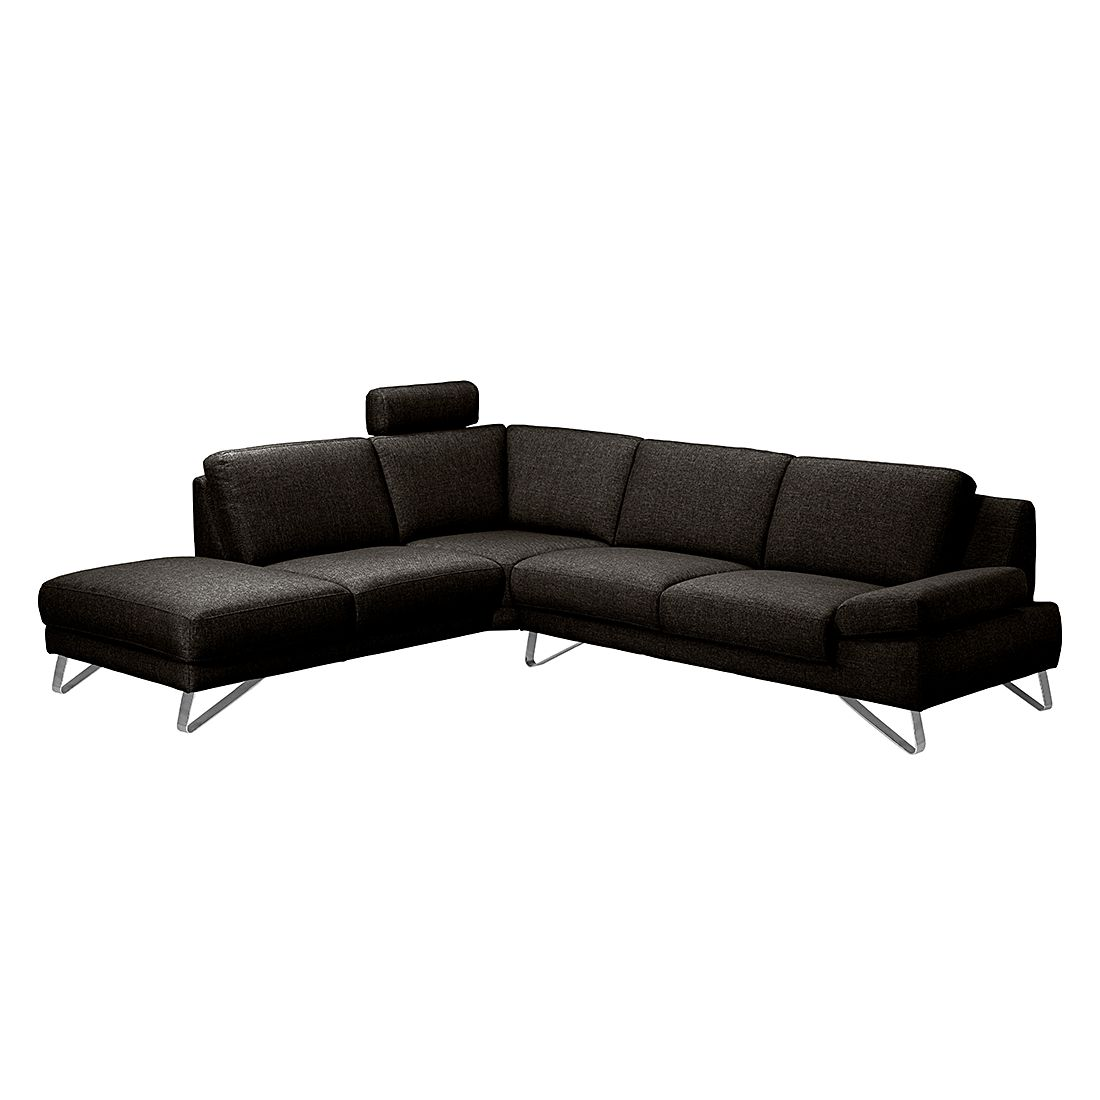 ecksofa silvano webstoff braun schwarz ottomane davorstehend links mit 1 kopfst tze. Black Bedroom Furniture Sets. Home Design Ideas